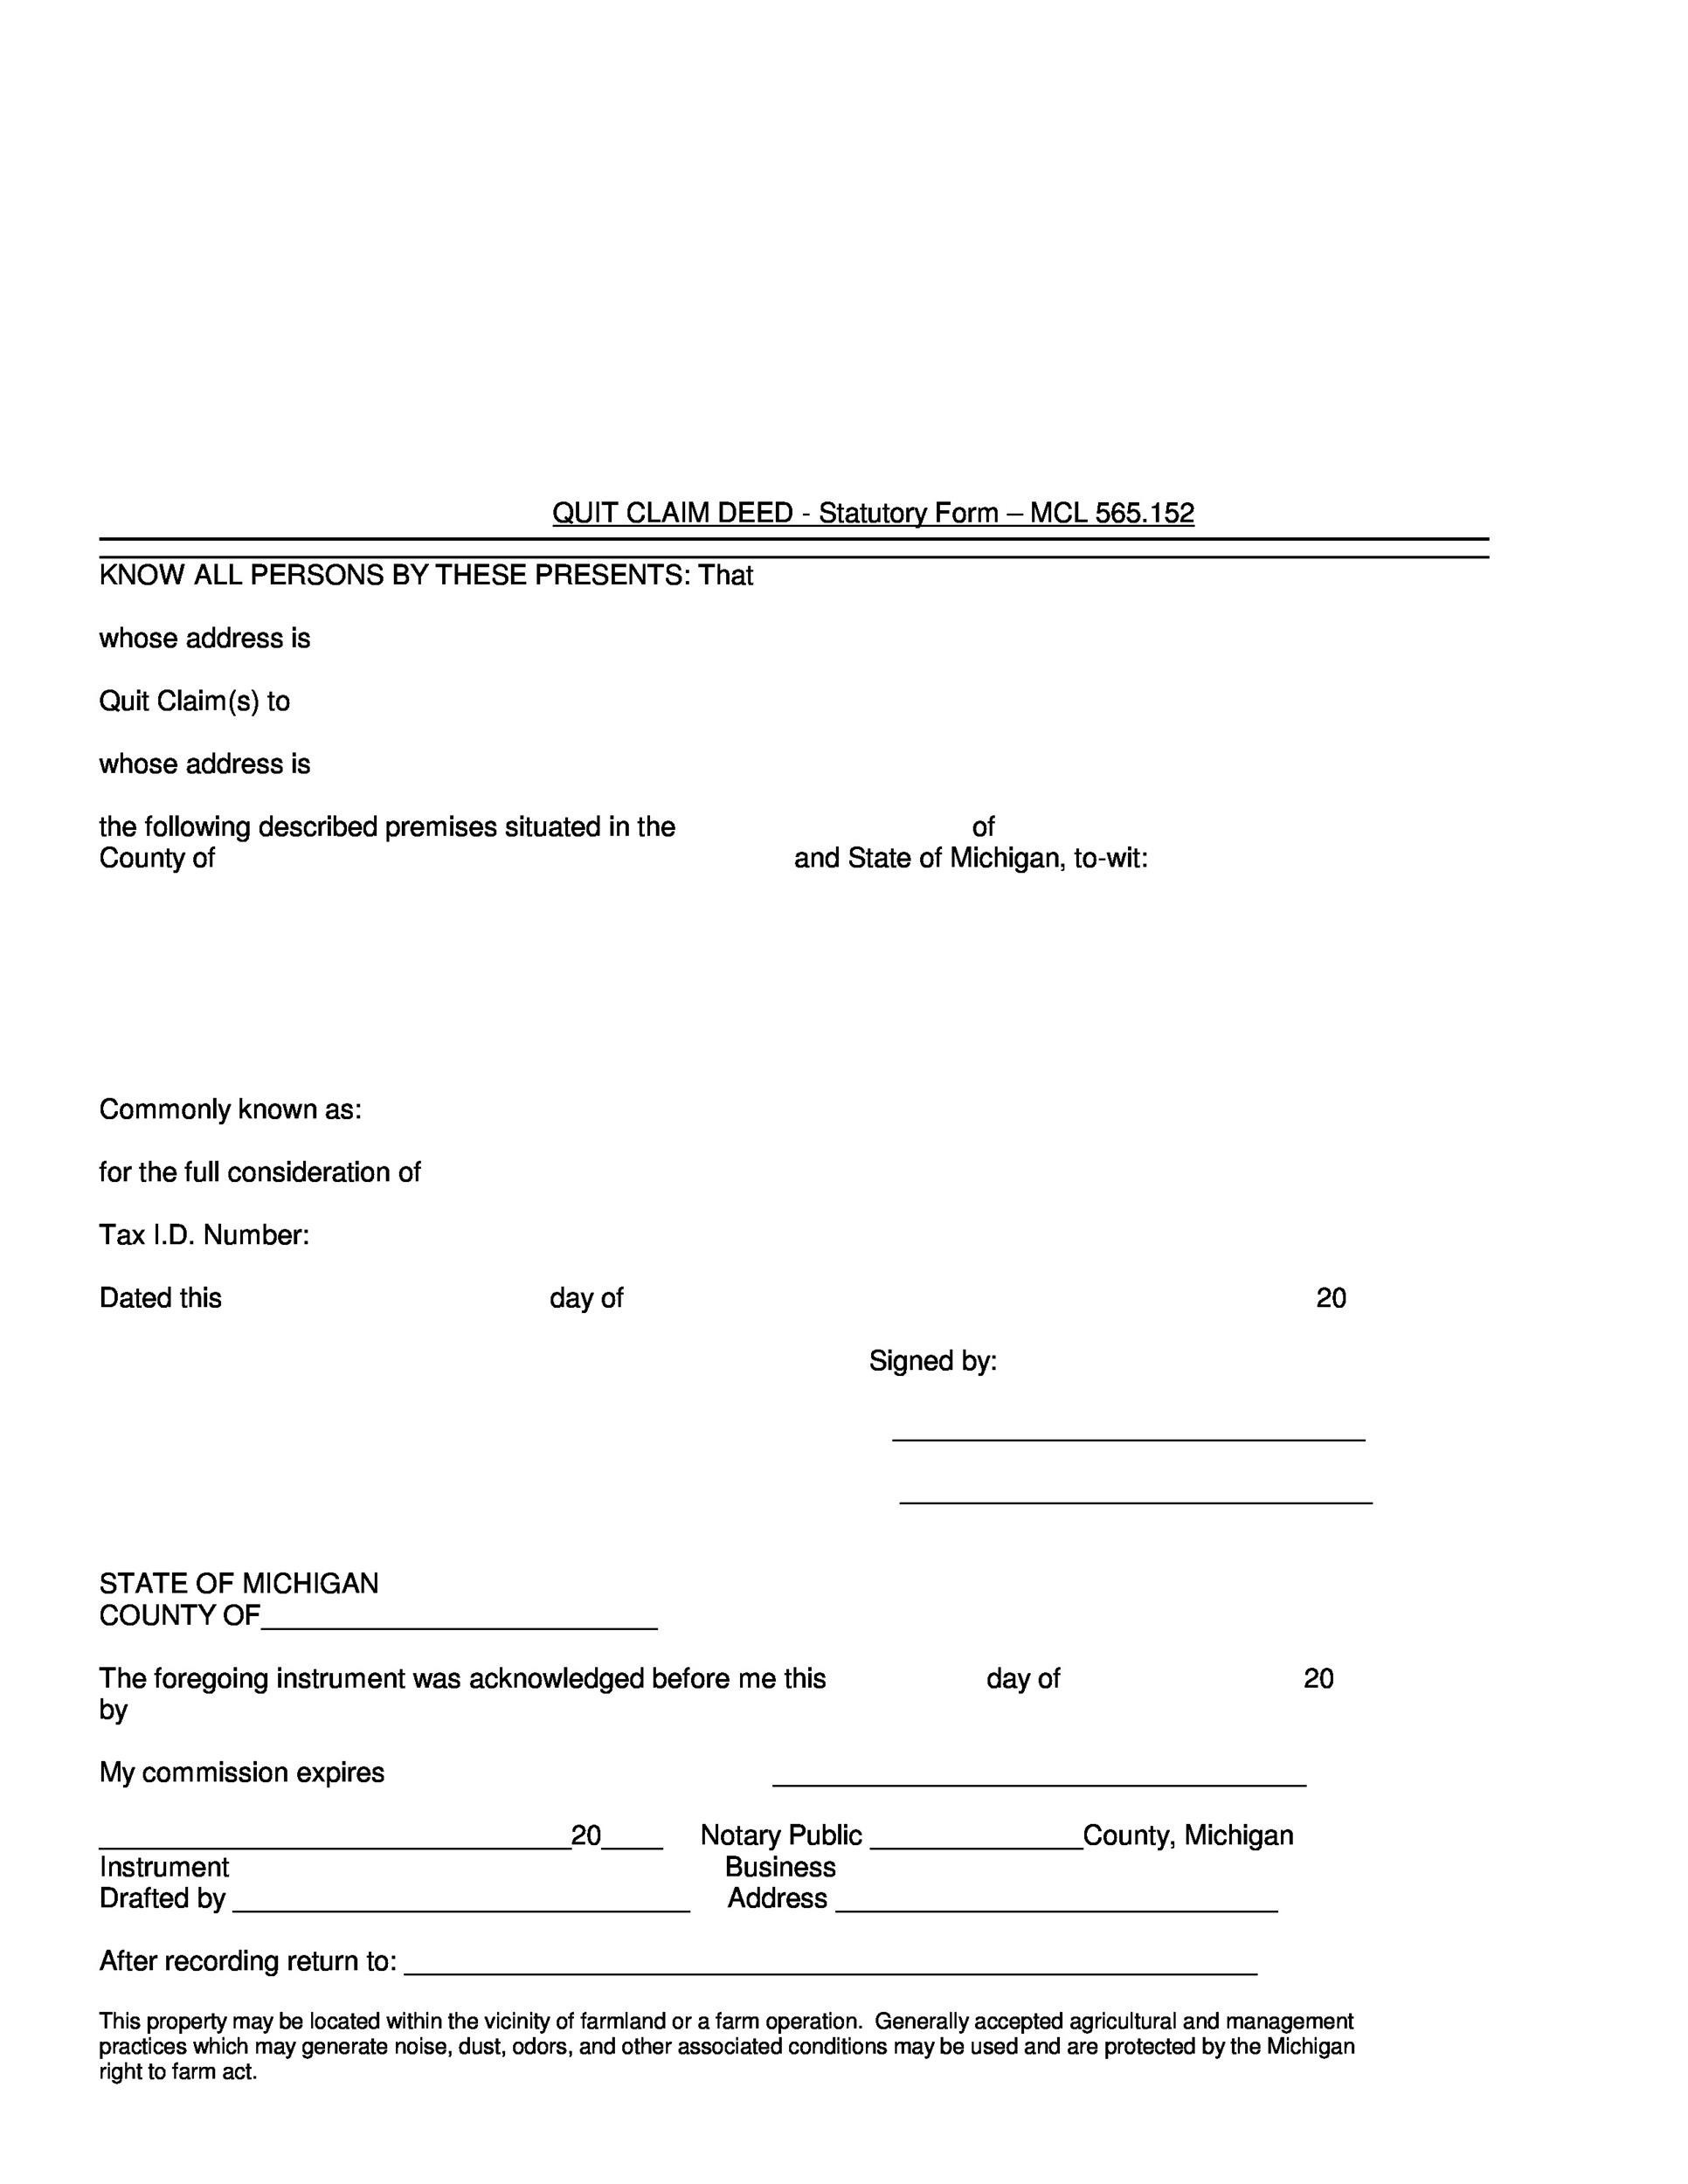 Free Quit Claim Deed Template 16